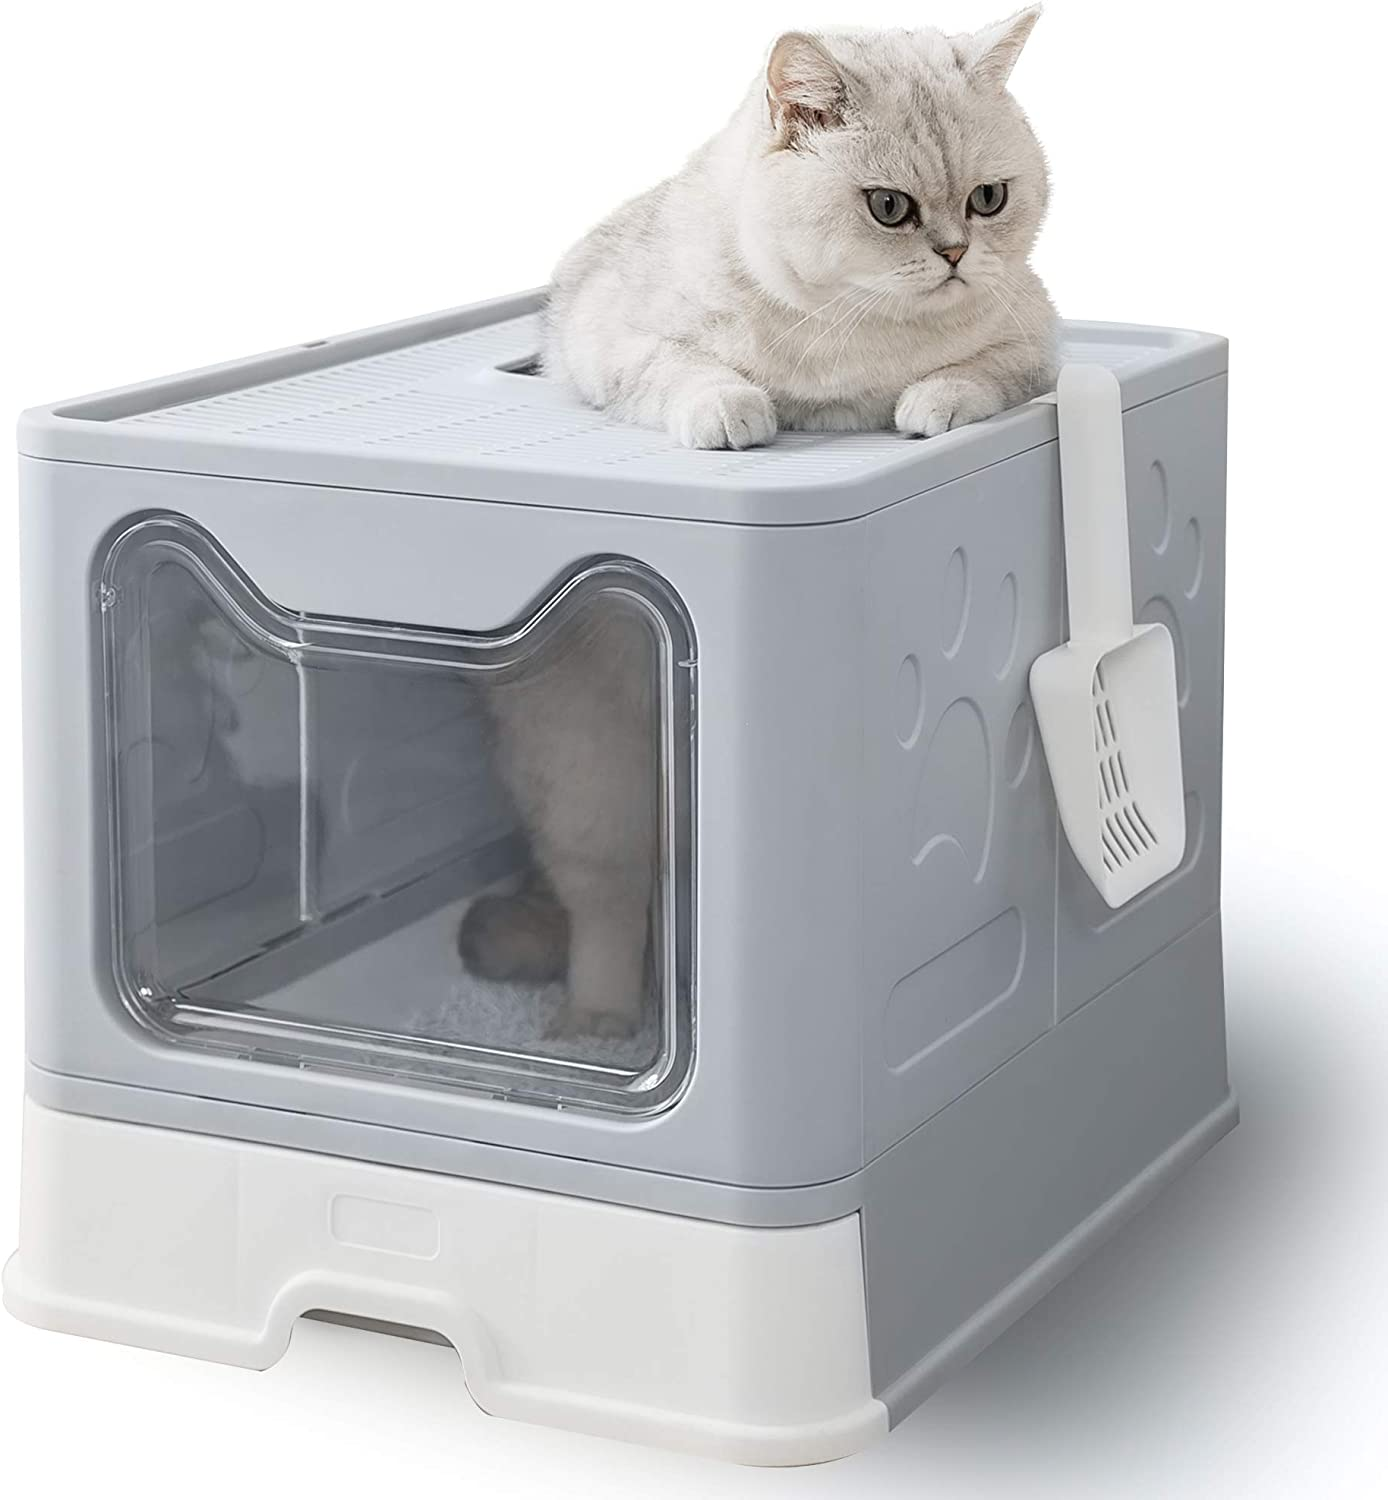 Dealing full Deluxe price reduction HIPIPET Cat Litter Box Foldable Entry Li with Top